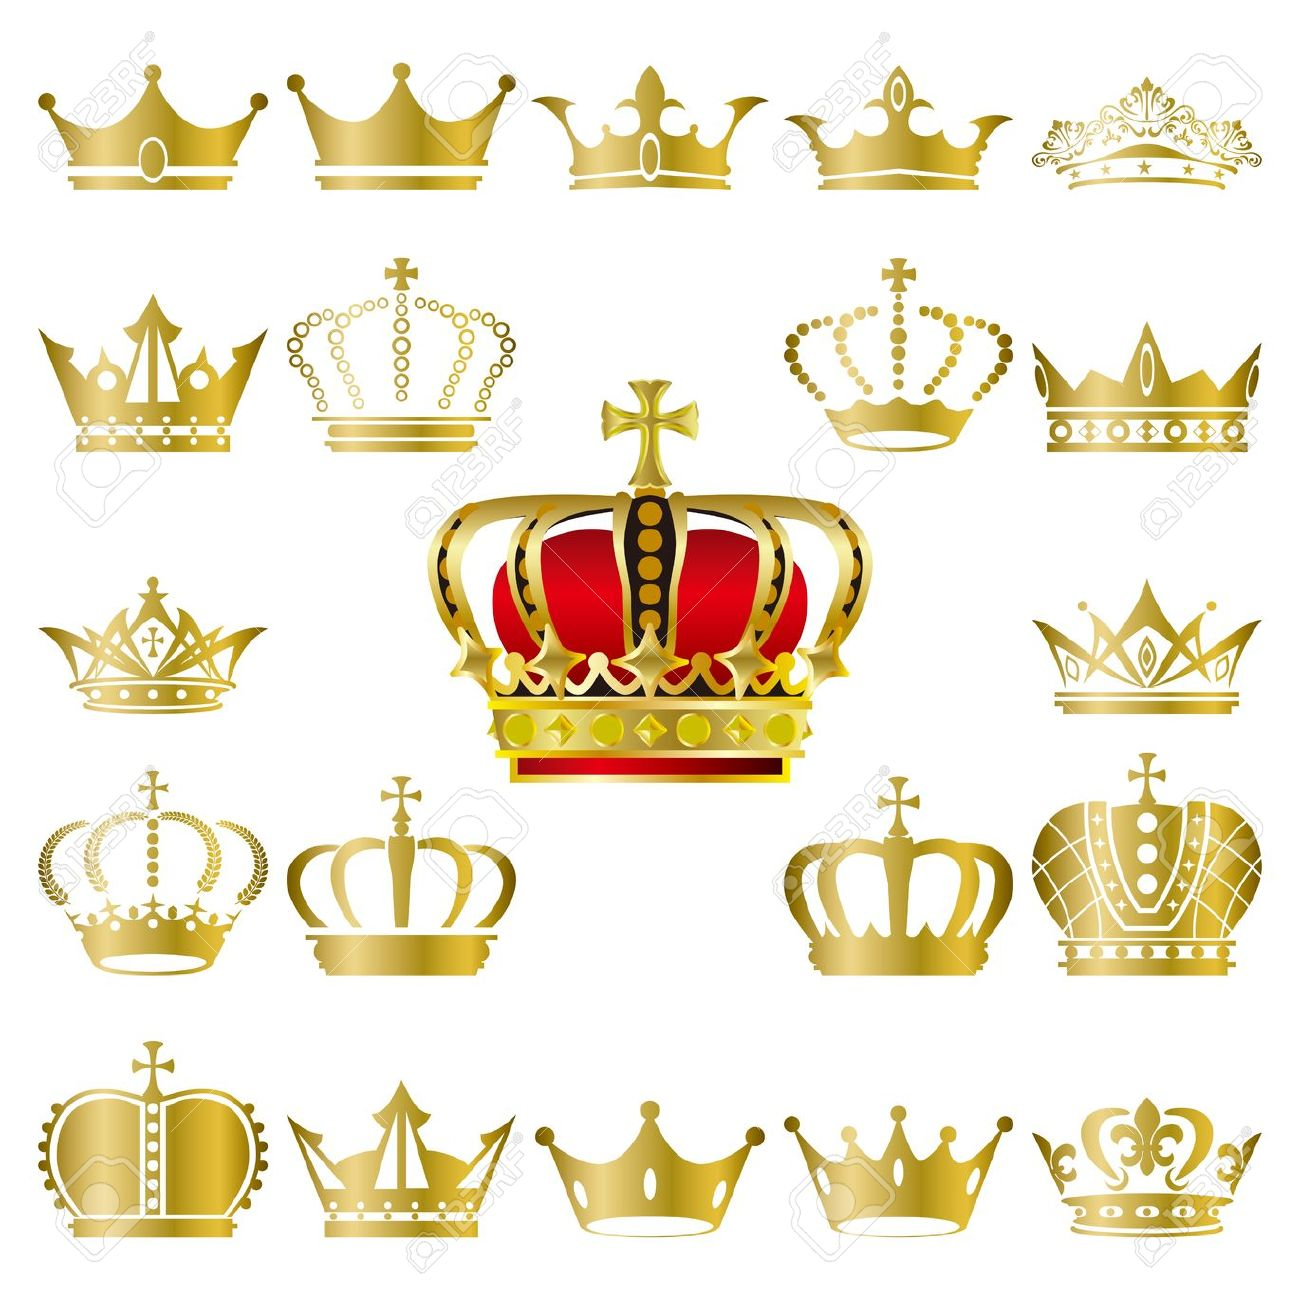 1300x1300 Crown Royal Clipart Vector Gold 9